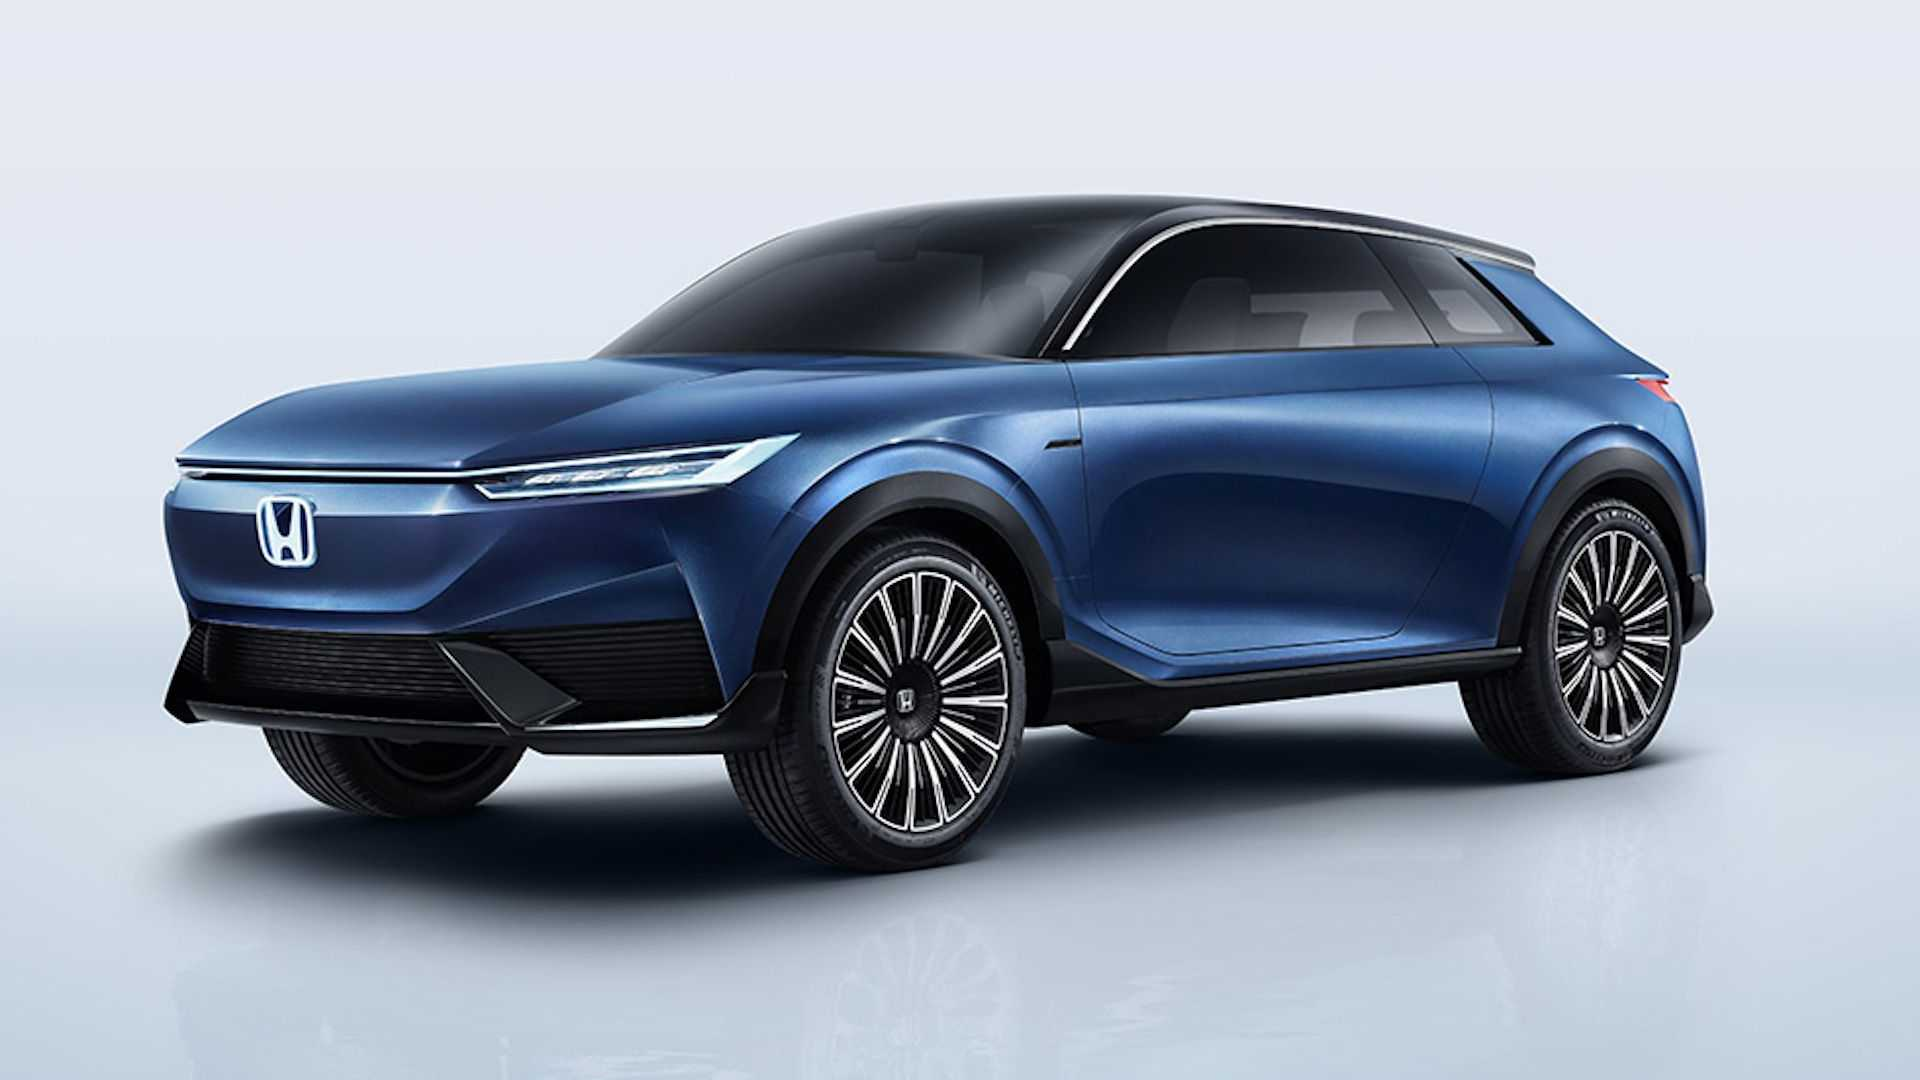 Honda shows intent on EVs, unveils SUV e:concept